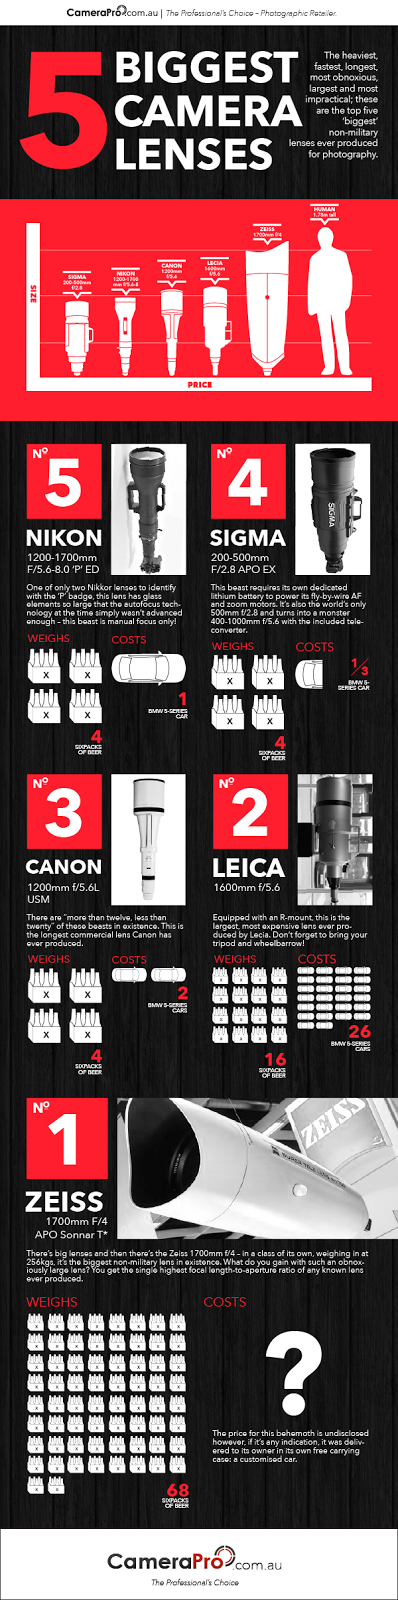 5 Biggest Camera Lenses Ever Produced for Photography #Infographic